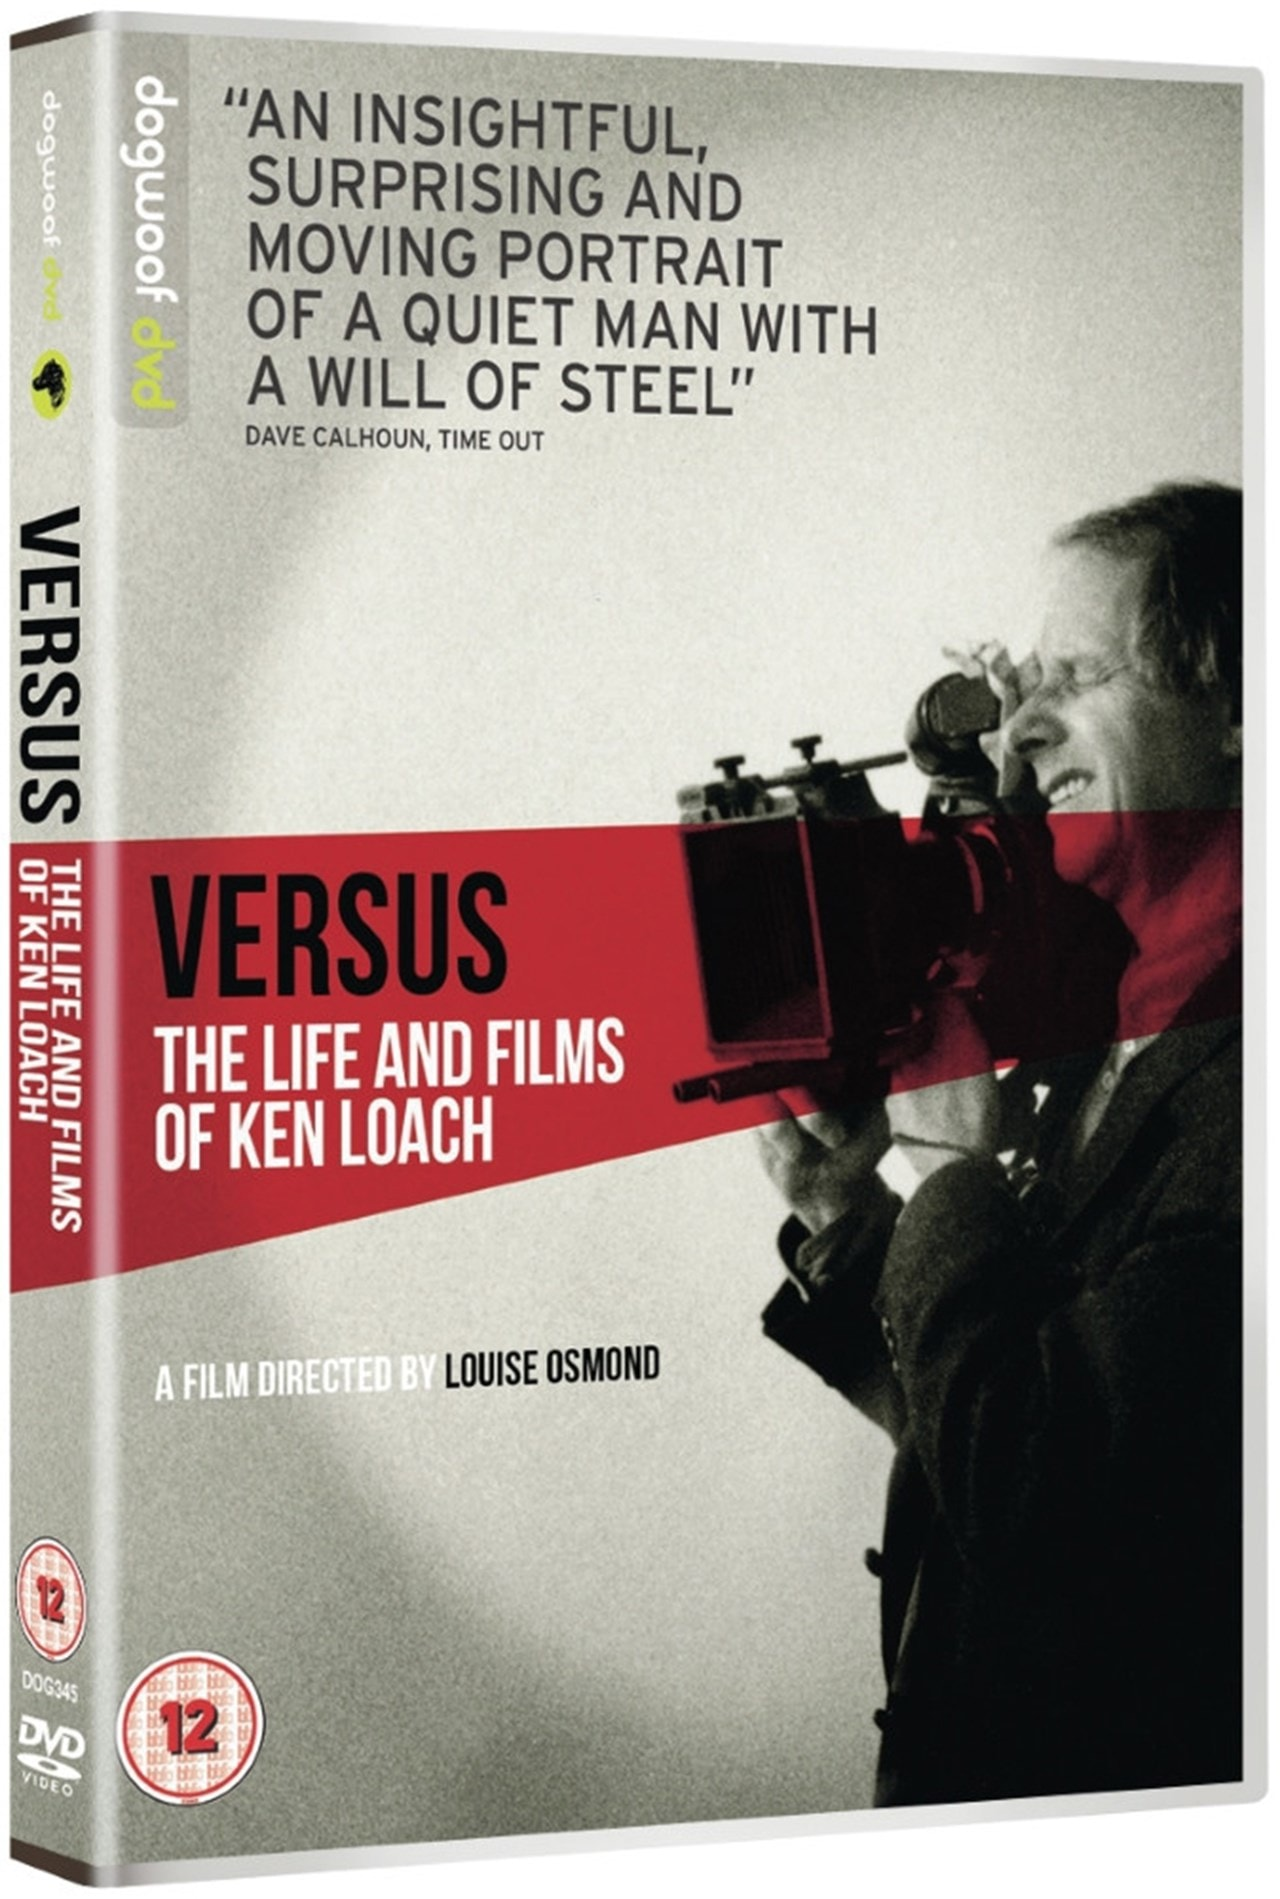 Versus - The Life and Films of Ken Loach - 2